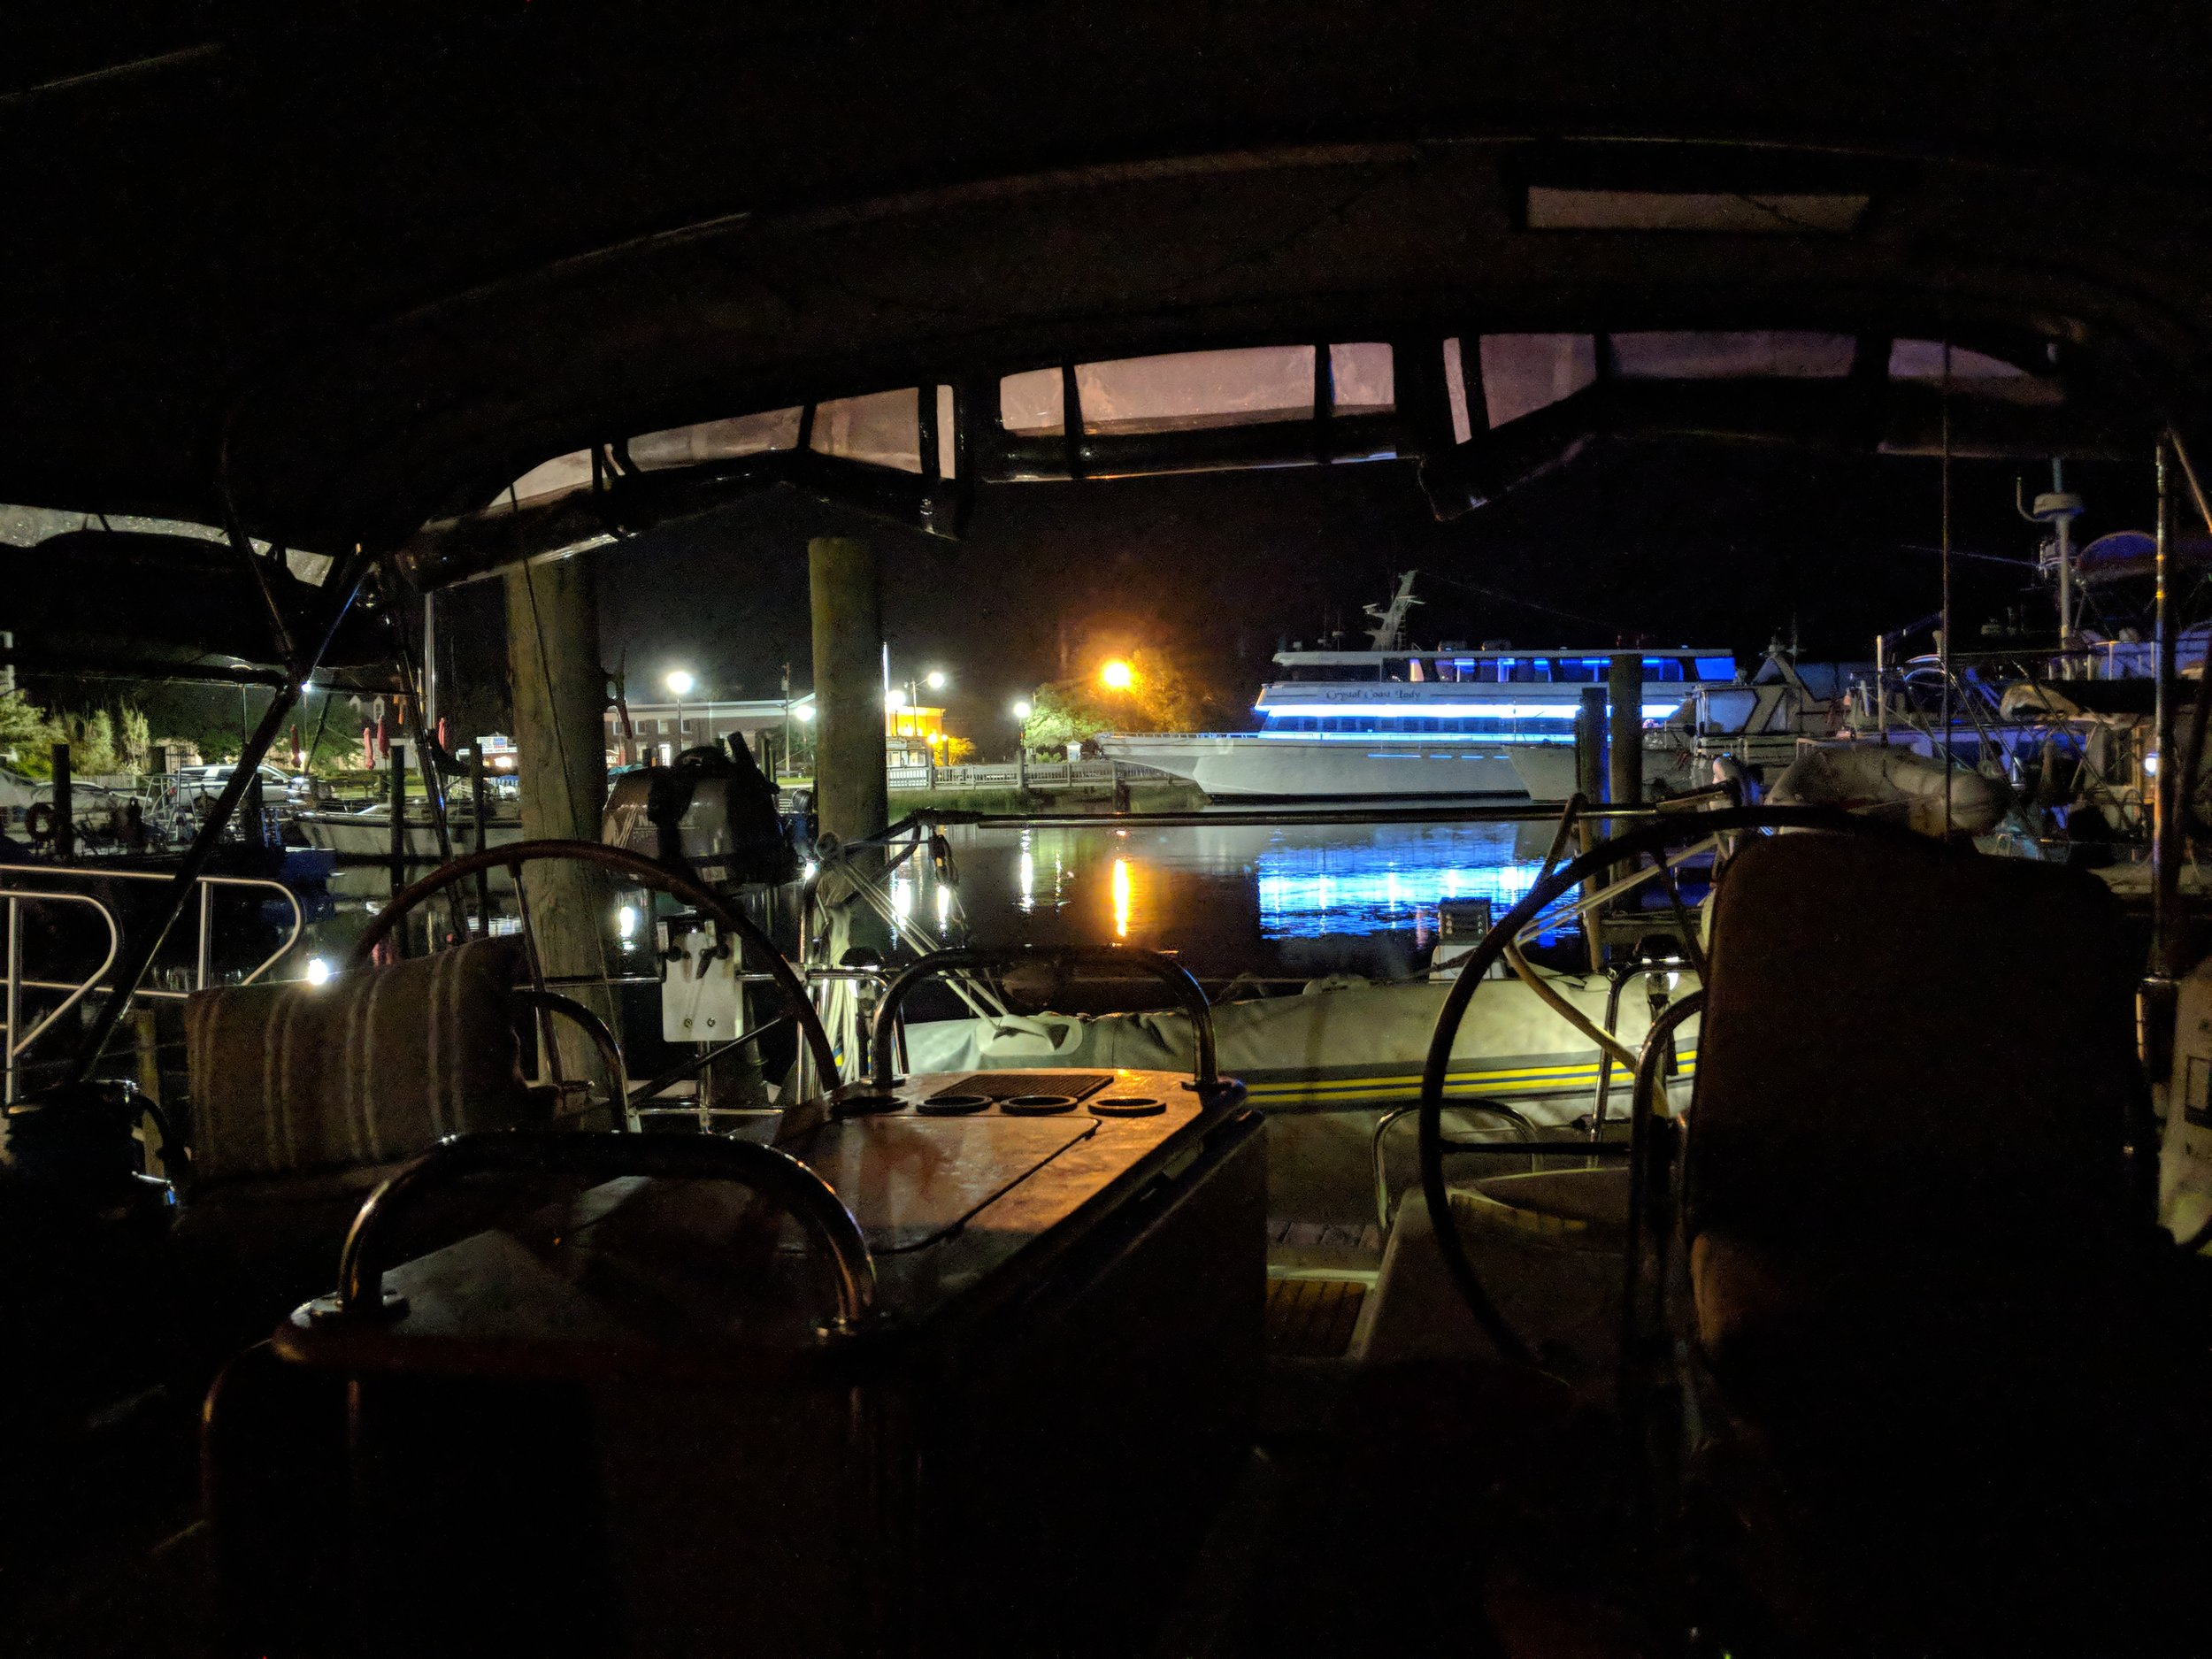 Even at night the marina is beautiful.